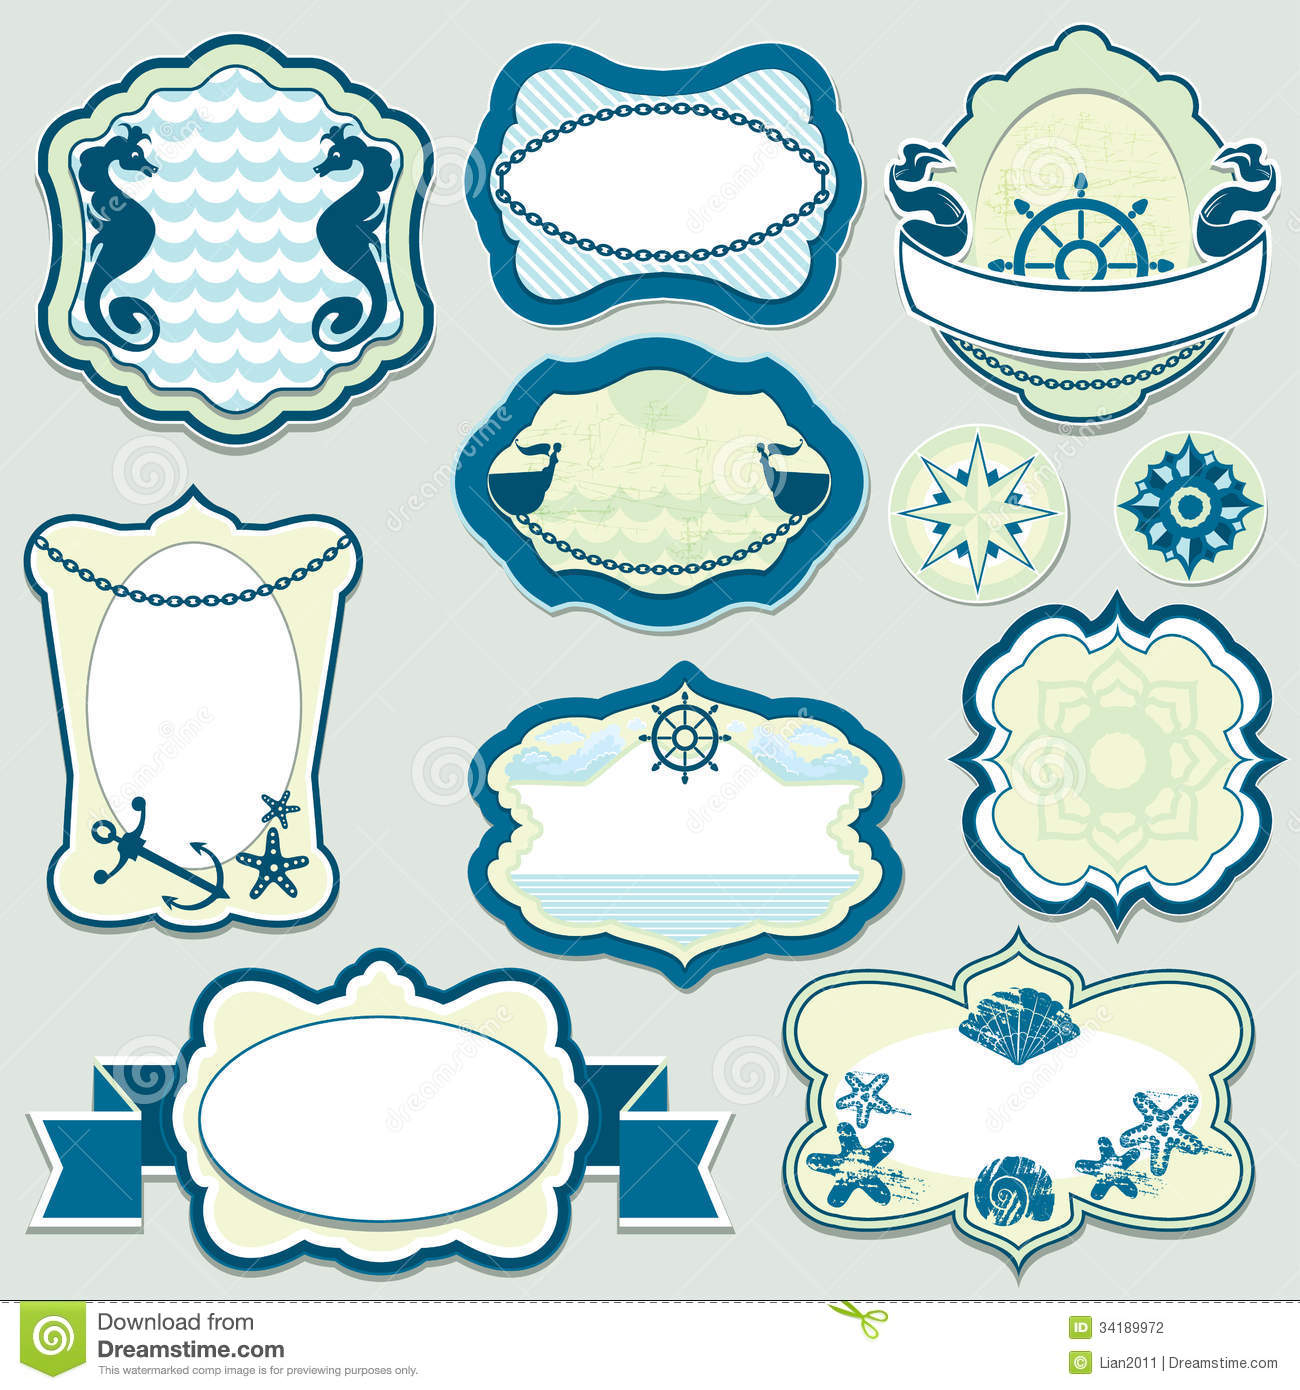 Bad Set Vintage Set Of Design Elements Marine Themes Frames Bad Stock